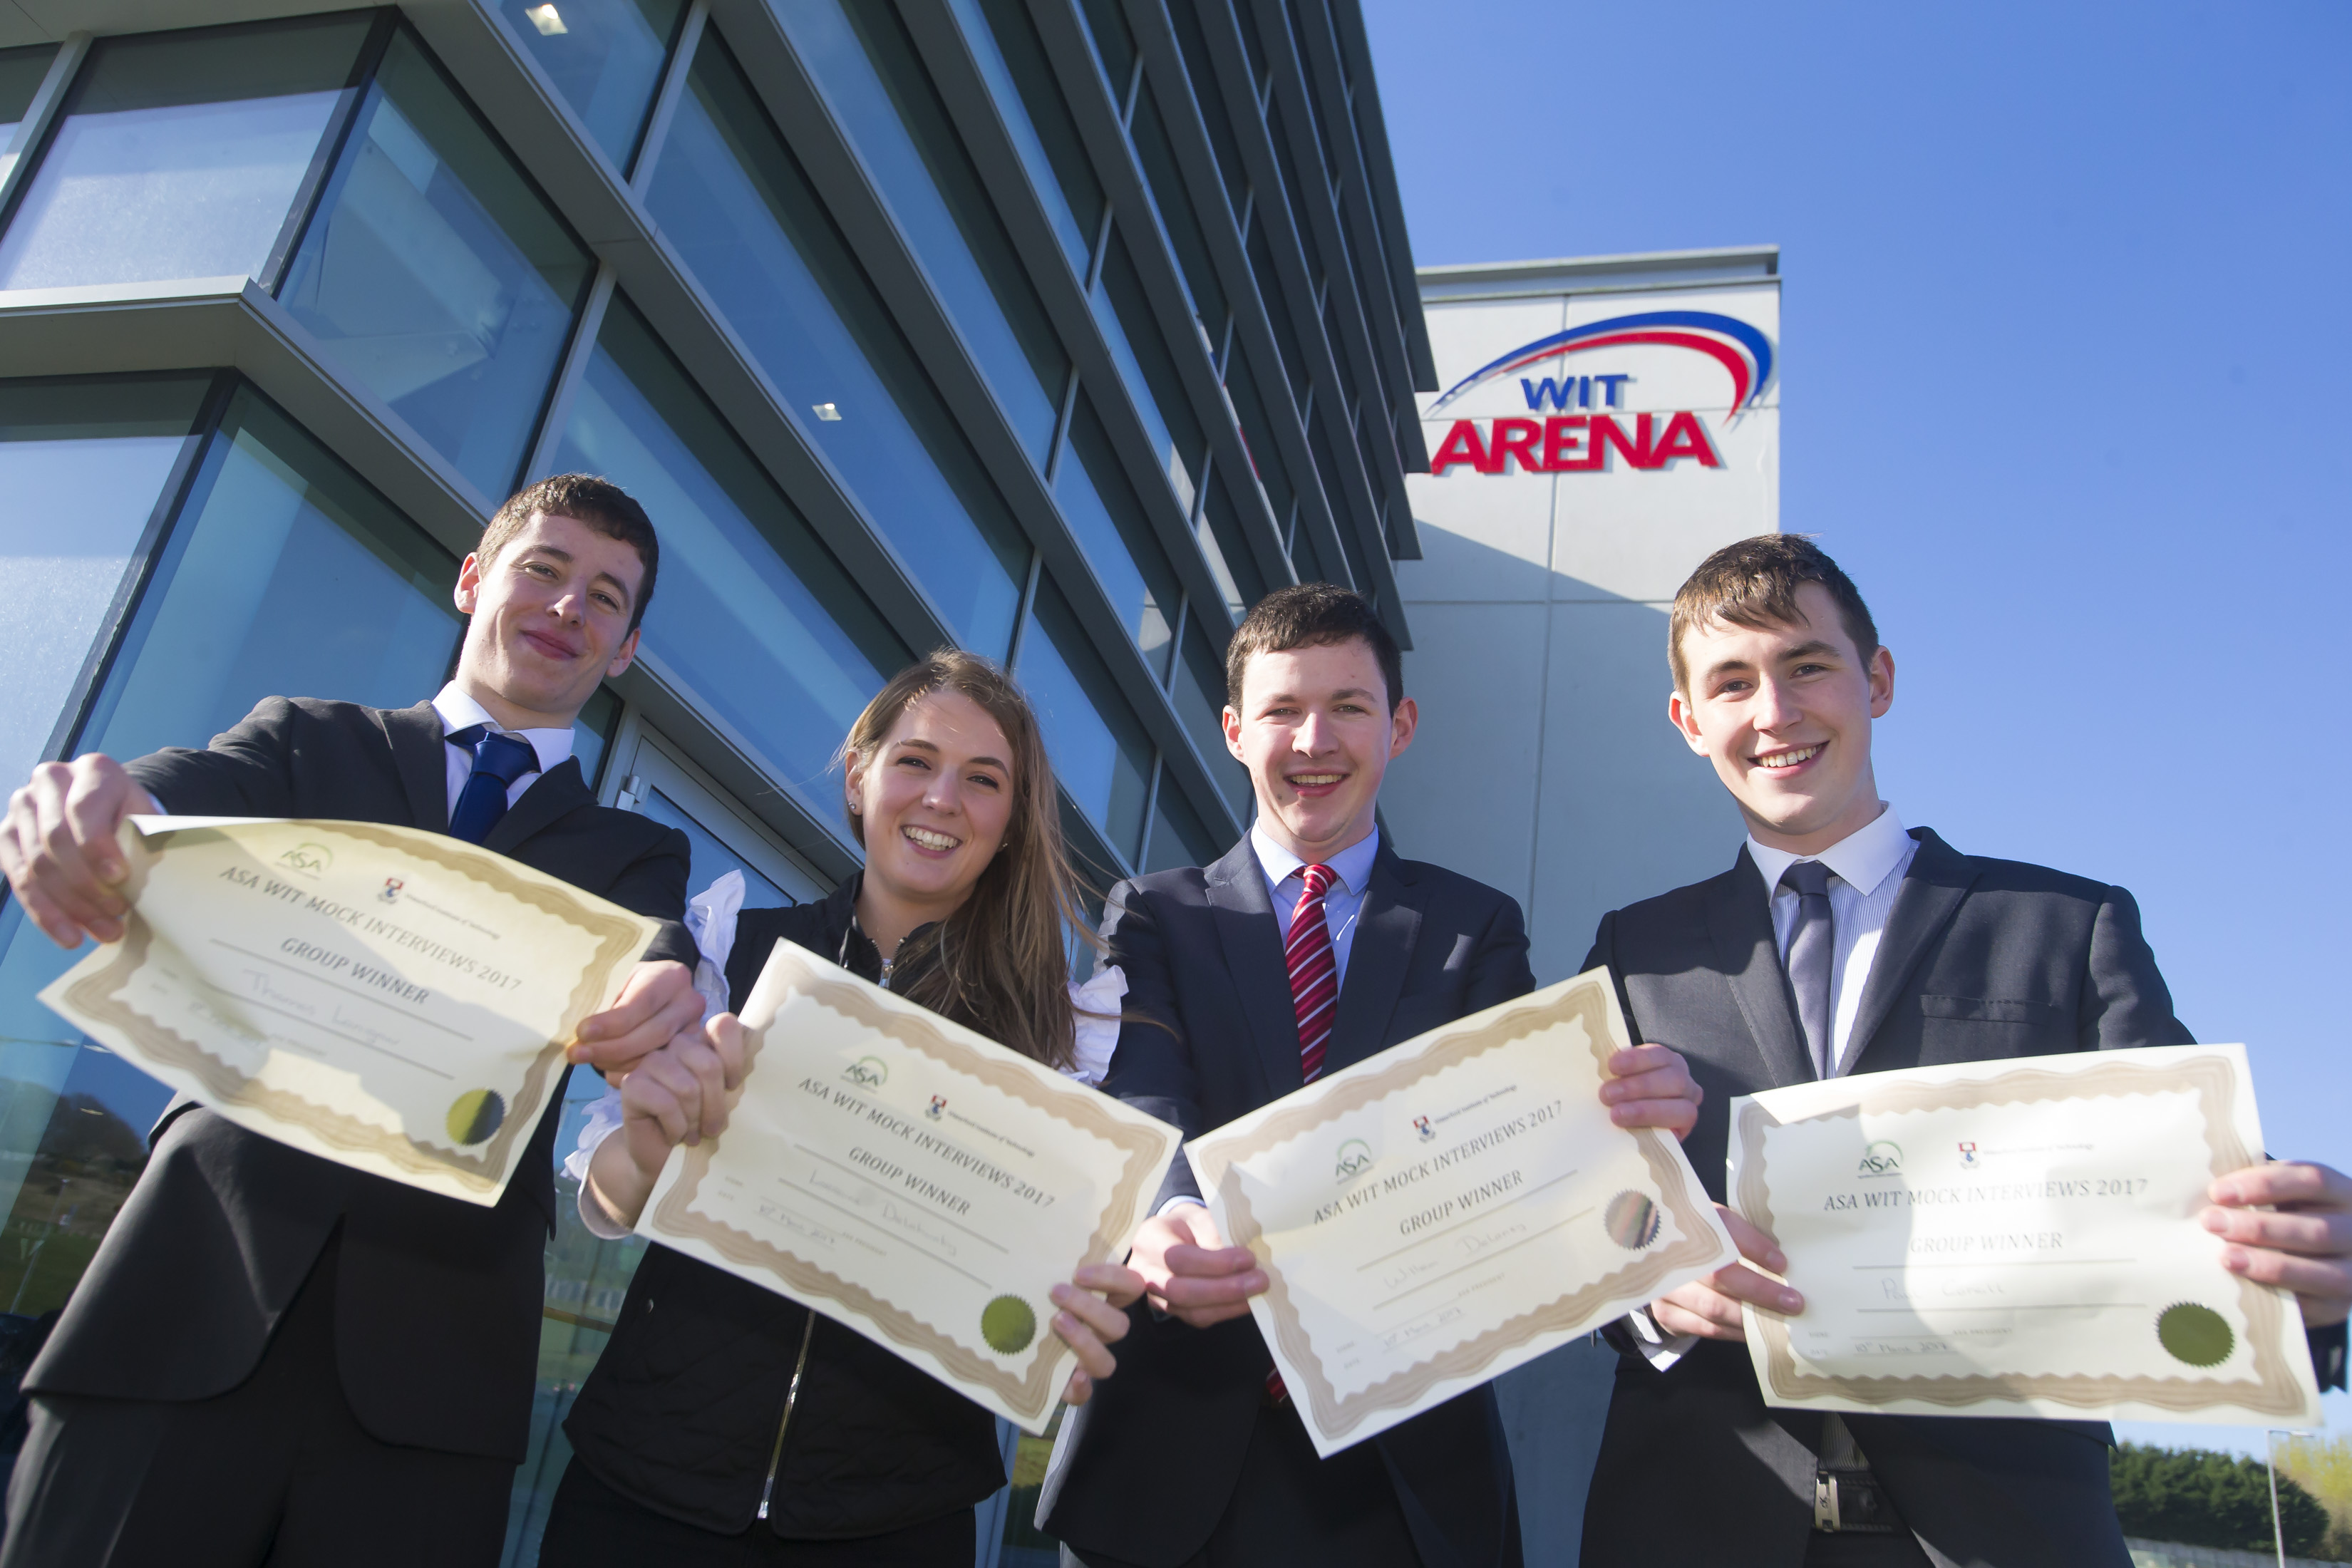 The Agriculture Science Association mock interview winners who were present at the Land Sciences Careers Day, Thomas Lannigan, Lorraine Delahunty, William Delaney and Paul Carkill